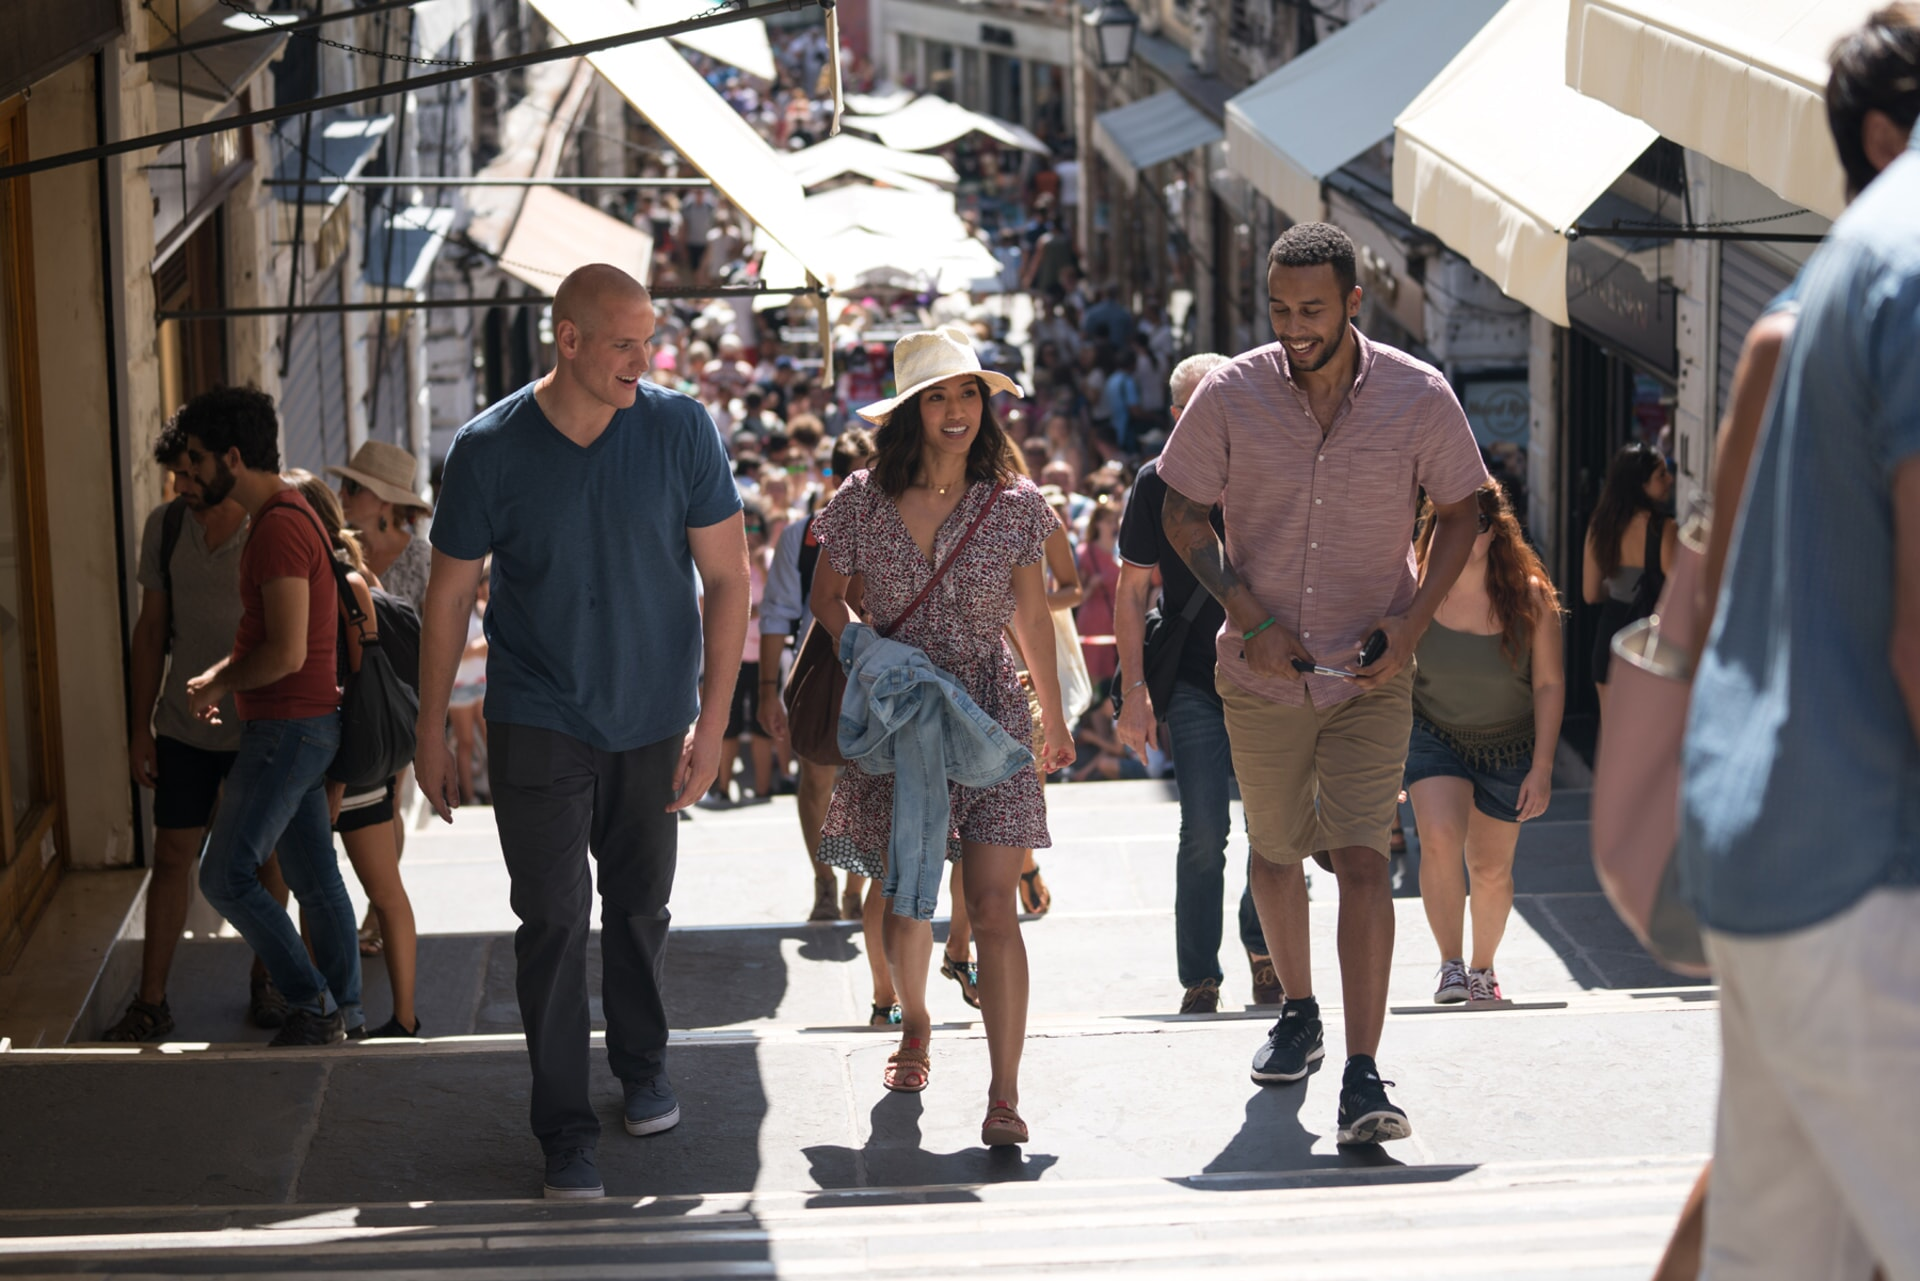 """SPENCER STONE as Spencer, ALISA ALLAPACH as Lisa and ANTHONY SADLER as Anthony in Warner Bros. Pictures' and Village Roadshow Pictures' """"THE 15:17 TO PARIS,"""" a Warner Bros. Pictures release."""